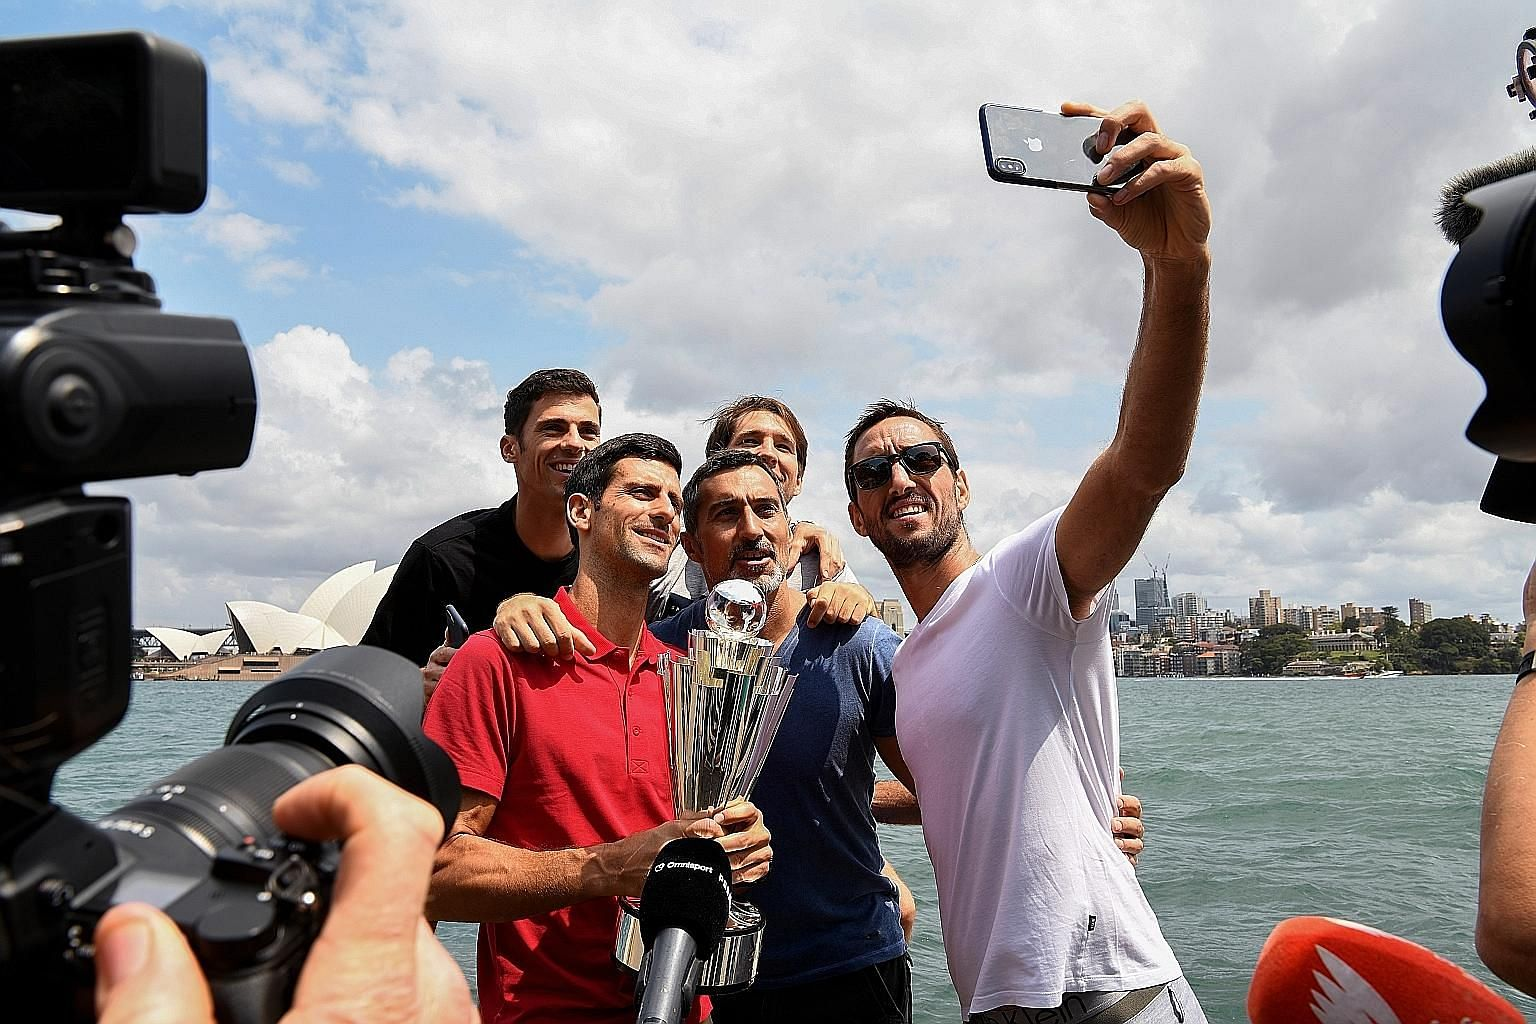 Novak Djokovic (in red) and the rest of the Serbia team posing for a wefie with the ATP Cup in Sydney. Australia has been a happy hunting ground for the 32-year-old.